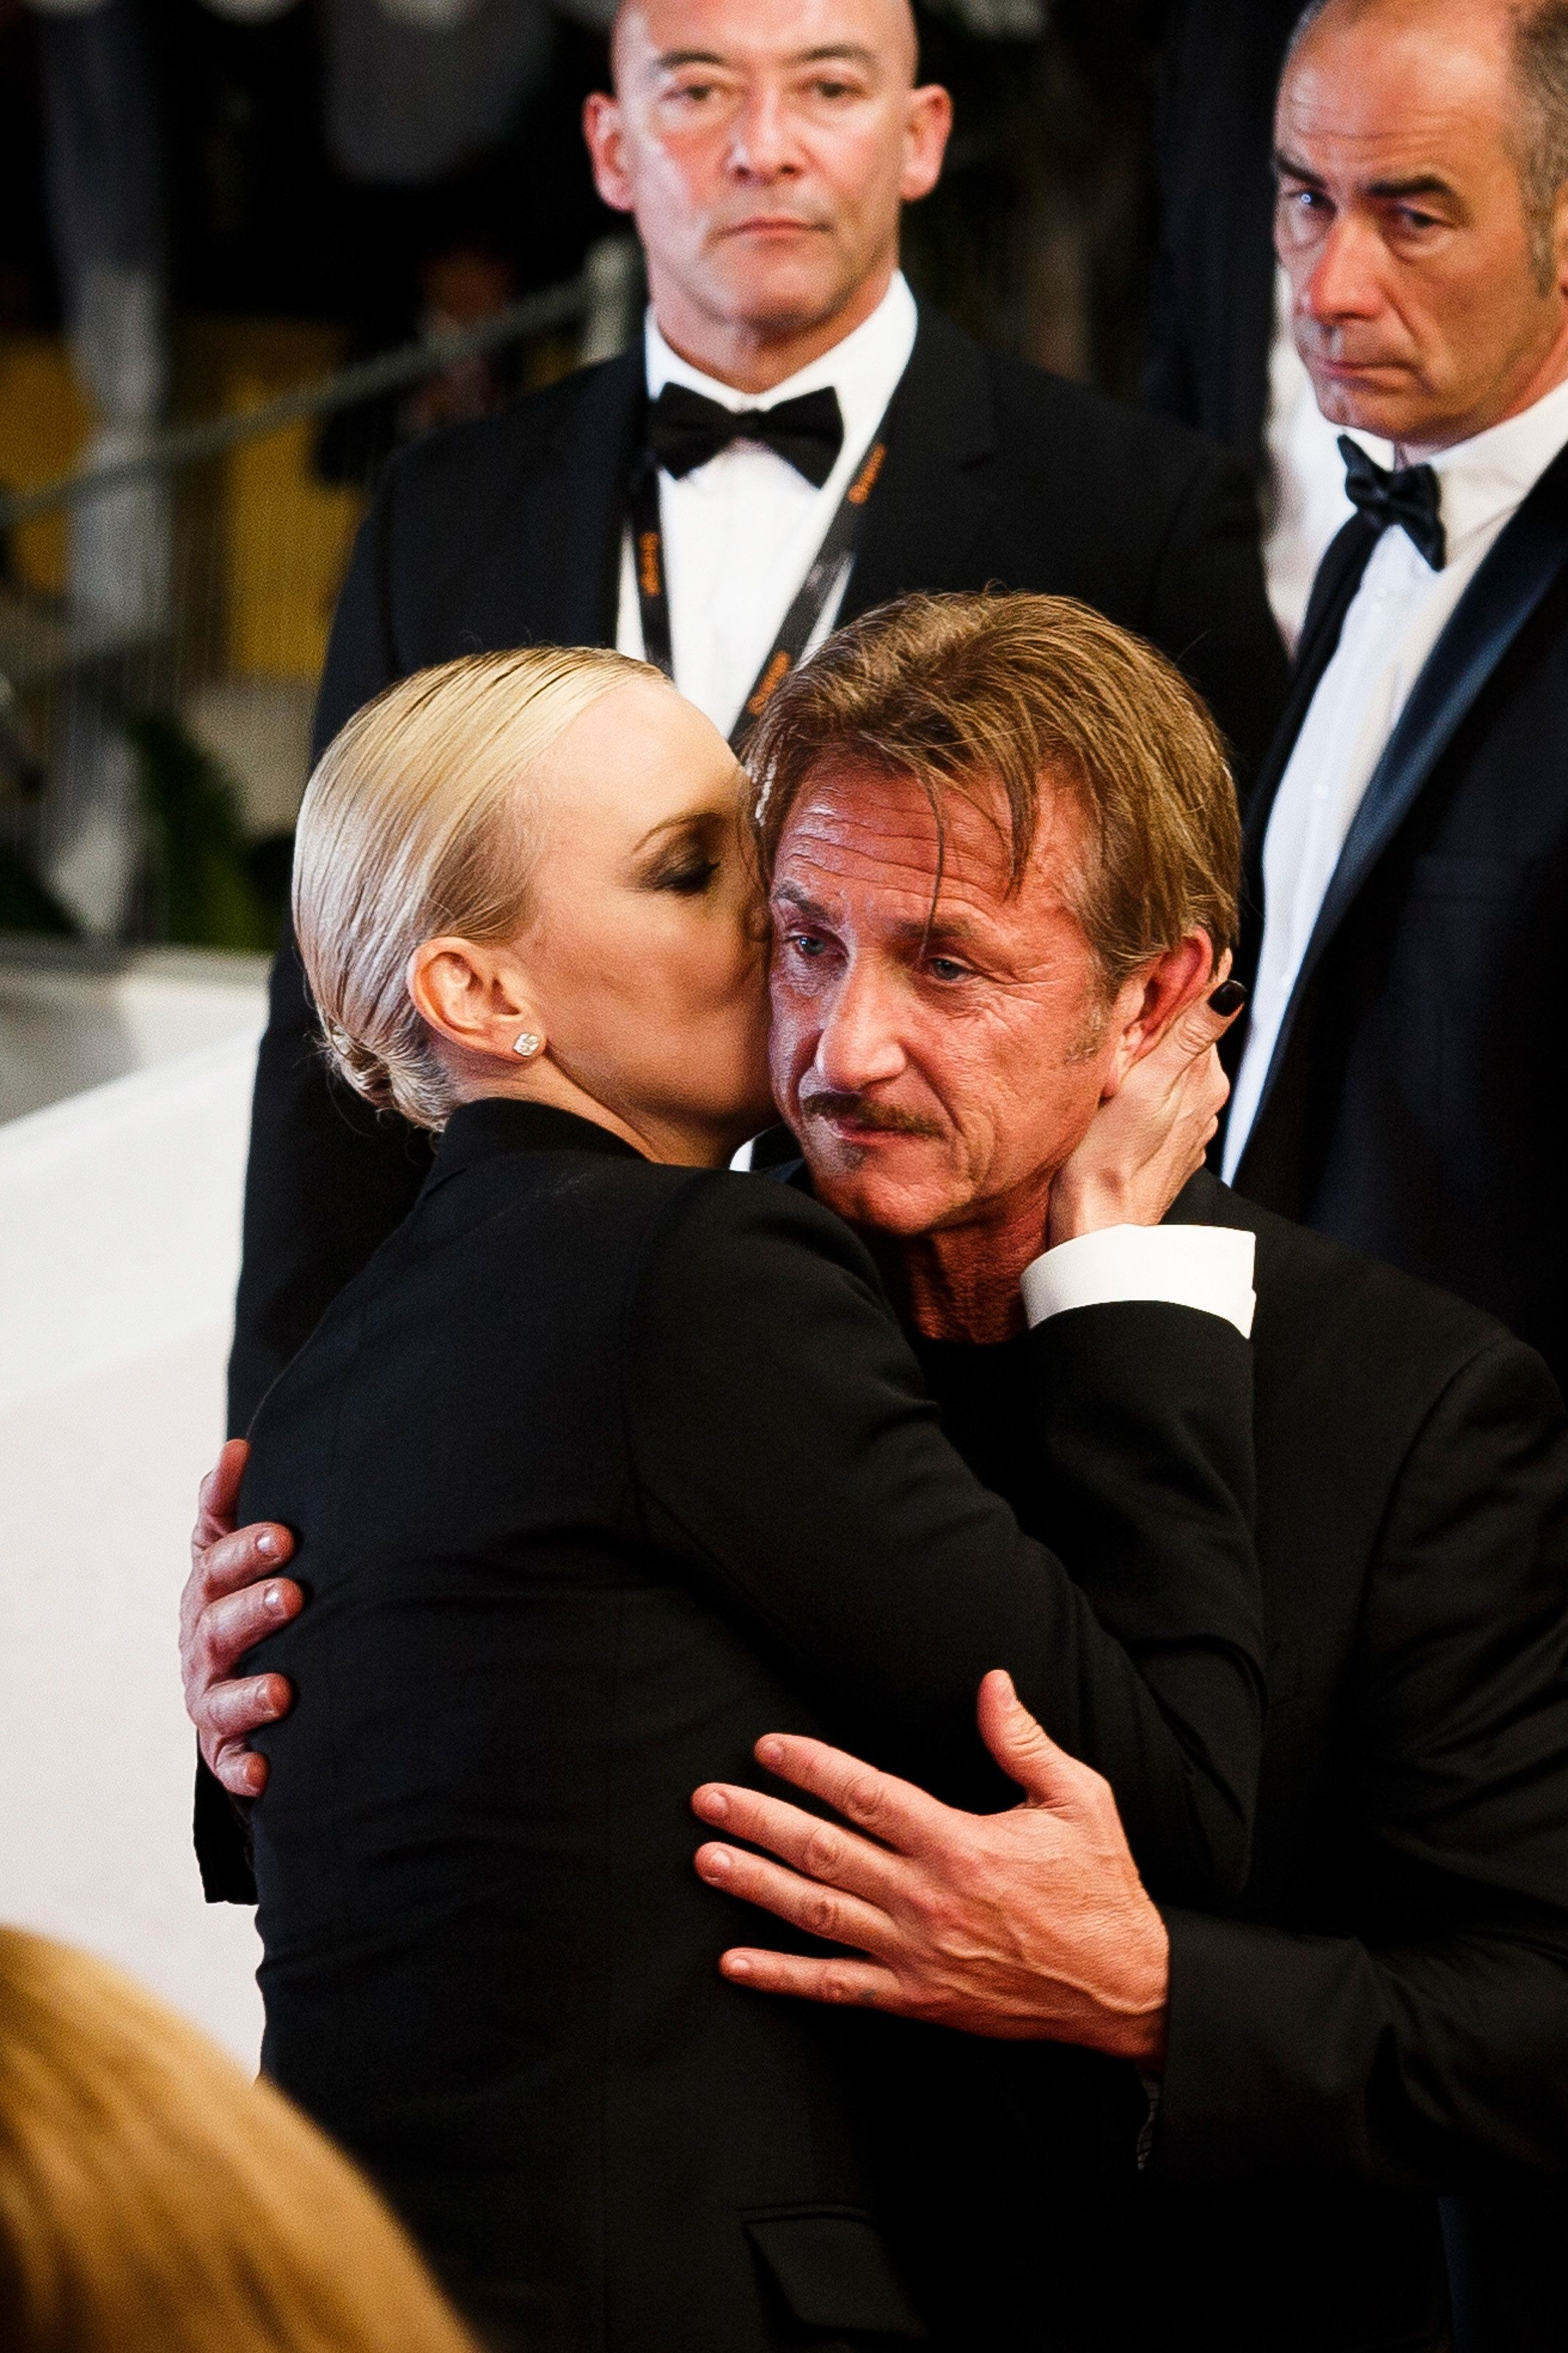 CANNES, FRANCE - MAY 20:  Sean Penn and Charlize Theron embrace each other as they leave the screening of 'The Last Face'  at the annual 69th Cannes Film Festival at Palais des Festivals on May 20, 2016 in Cannes, France.  (Photo by Tristan Fewings/Getty Images)